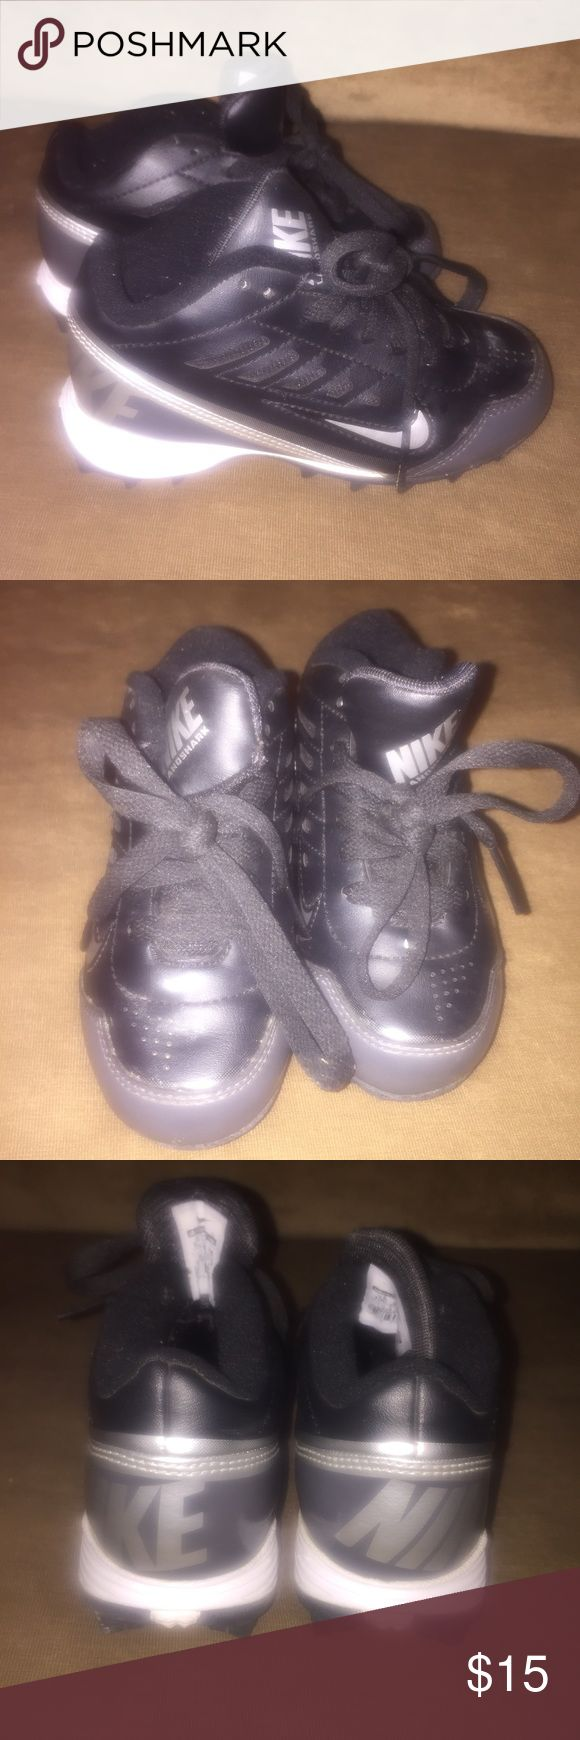 Nike toddler cleats. Size: 10C Nike toddler cleats. For baseball, soccer, football, etc. worn a few times, in good condition. Nike Shoes Athletic Shoes